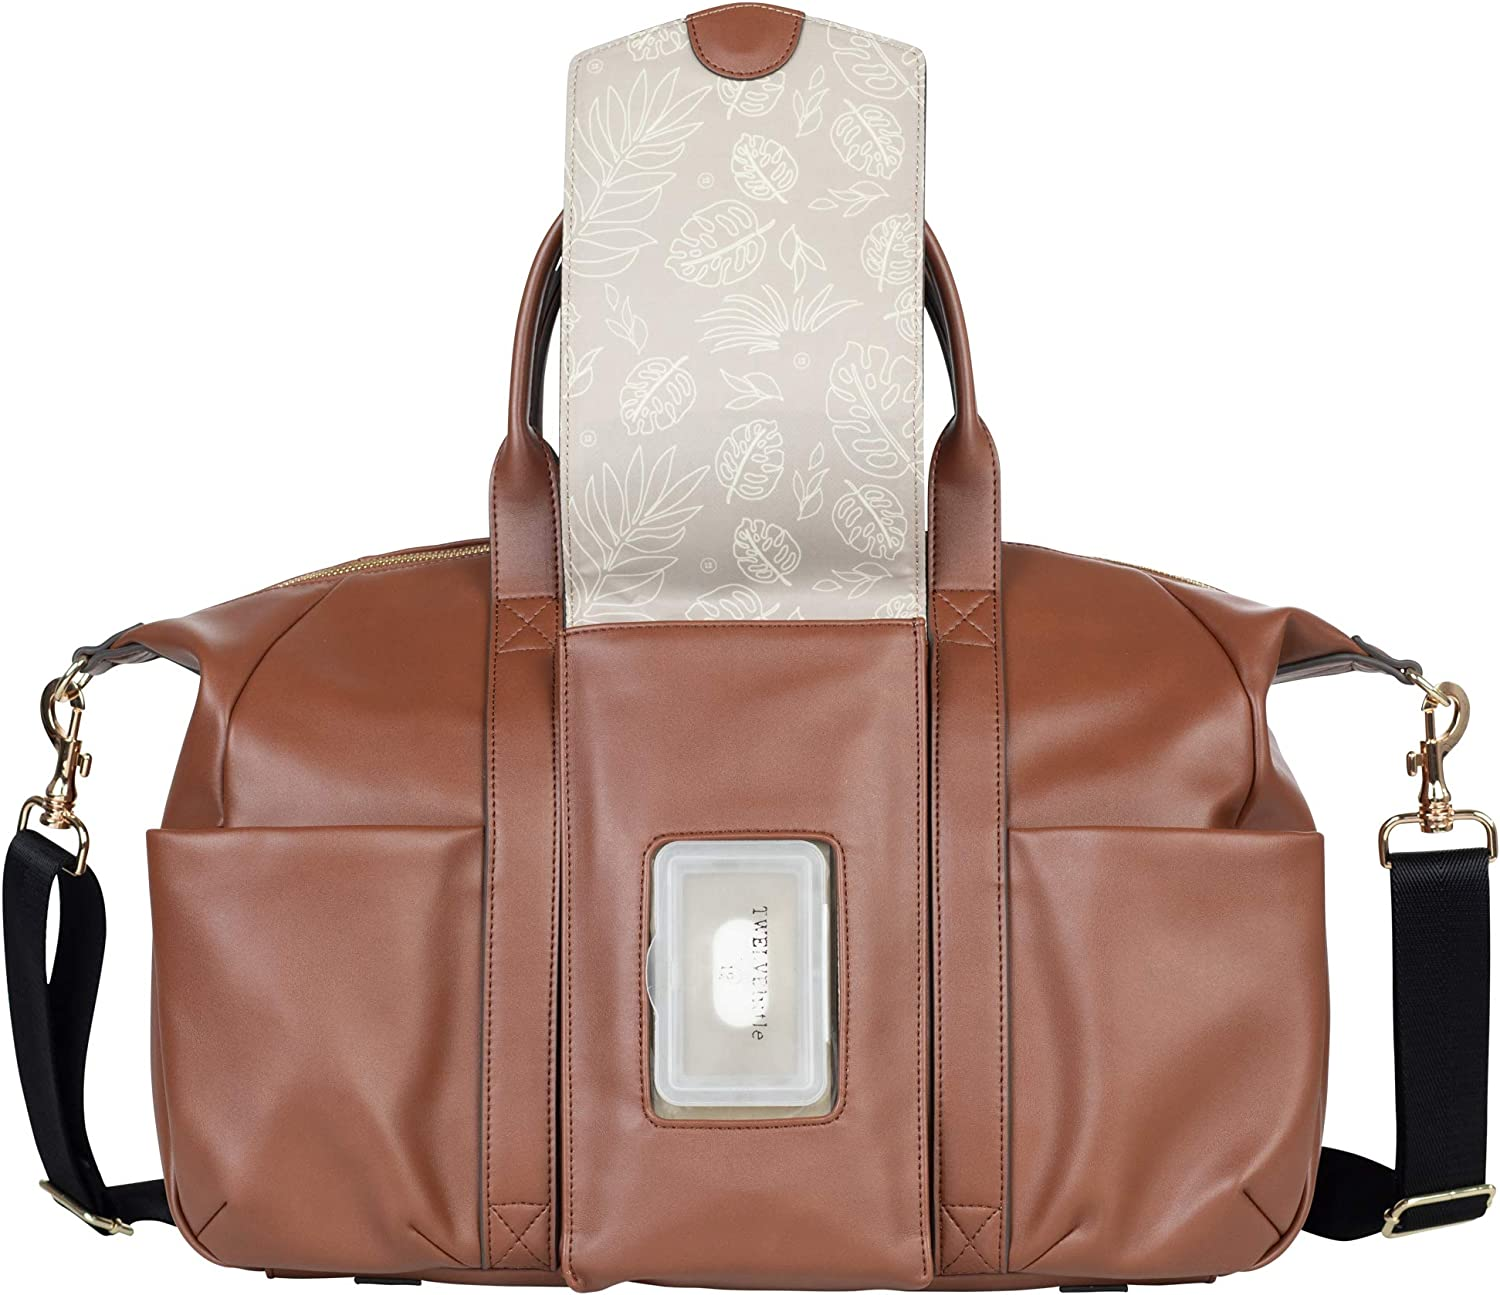 Includes Wipe Pouch and Changing Pad - Fashion Diaper Bag Made of Vegan Leather Toffee TWELVElittle Peek-A-Boo Satchel Diaperbag